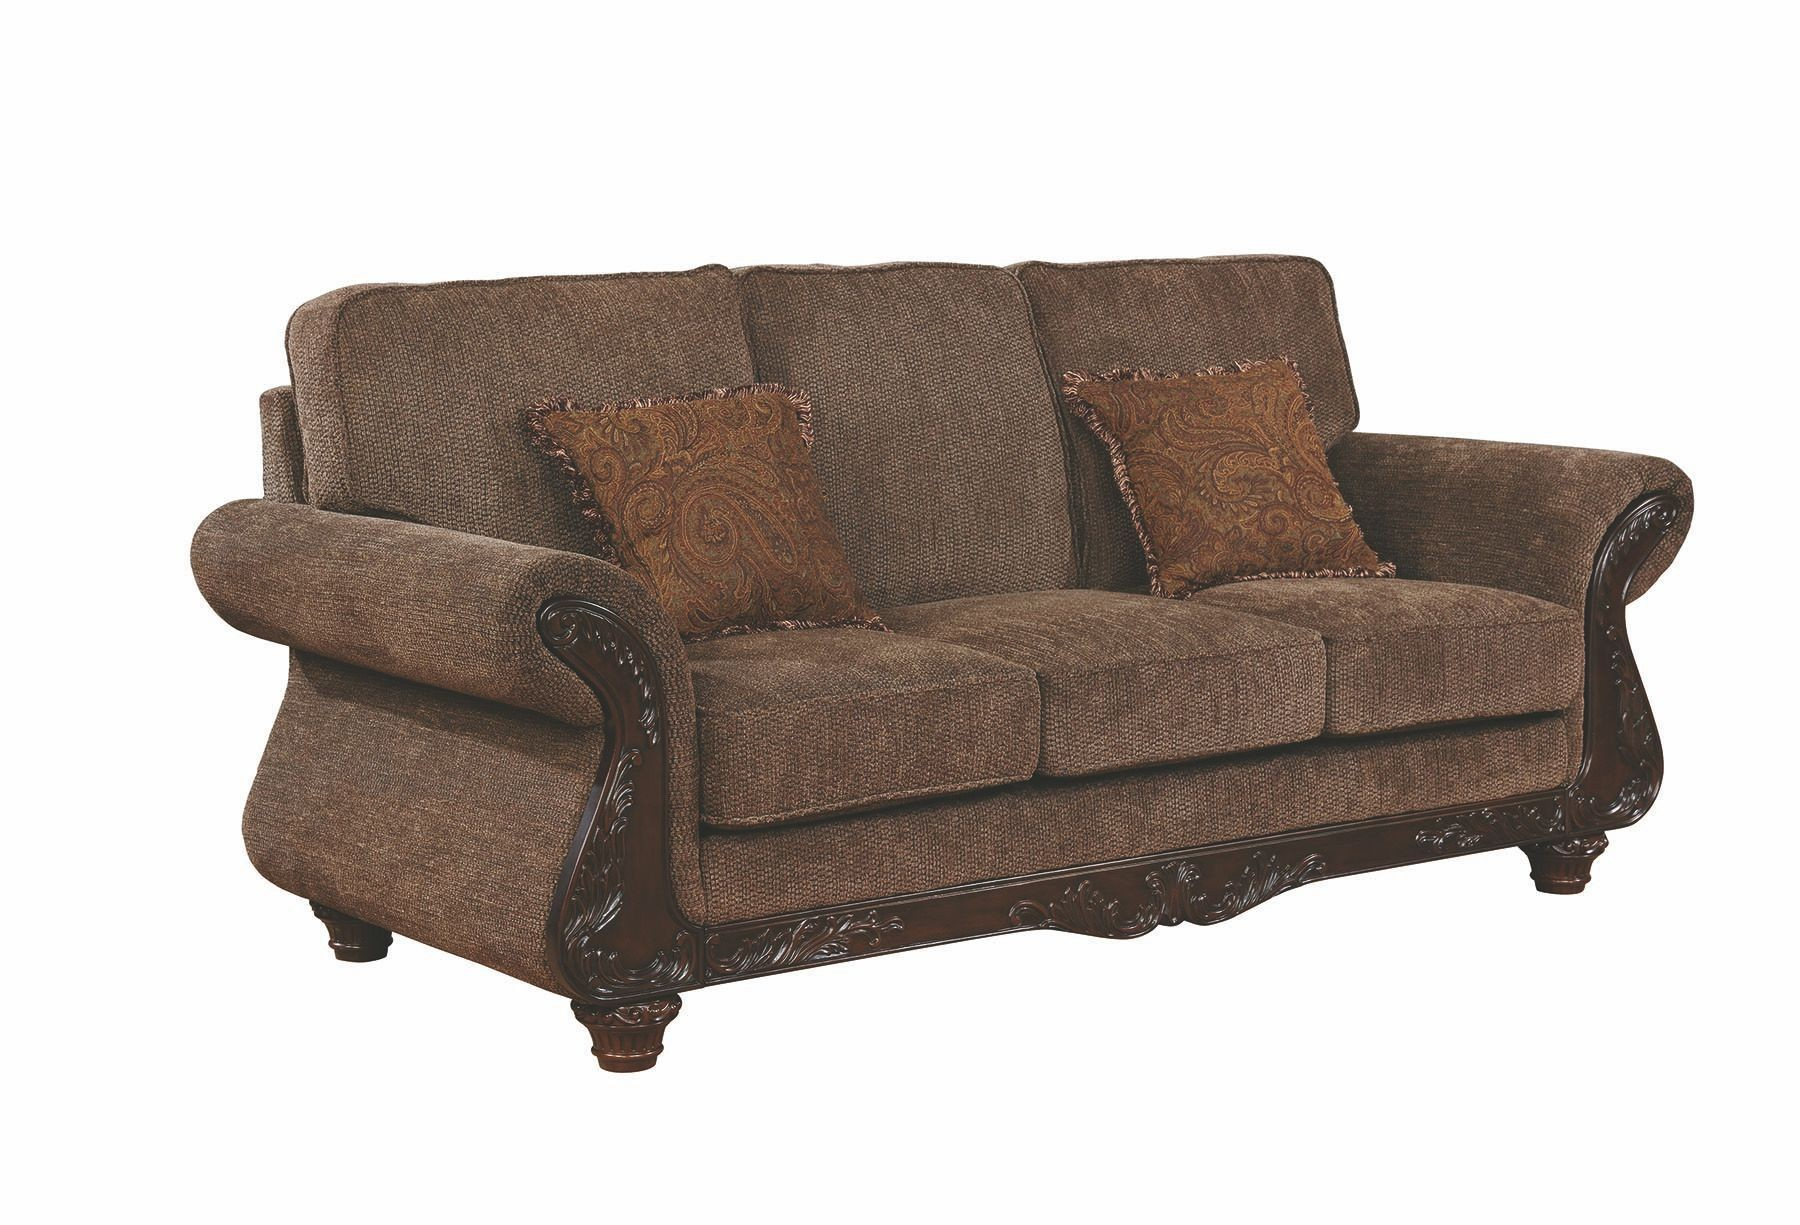 light brown sofa side table design phaedra 506411 coaster furniture